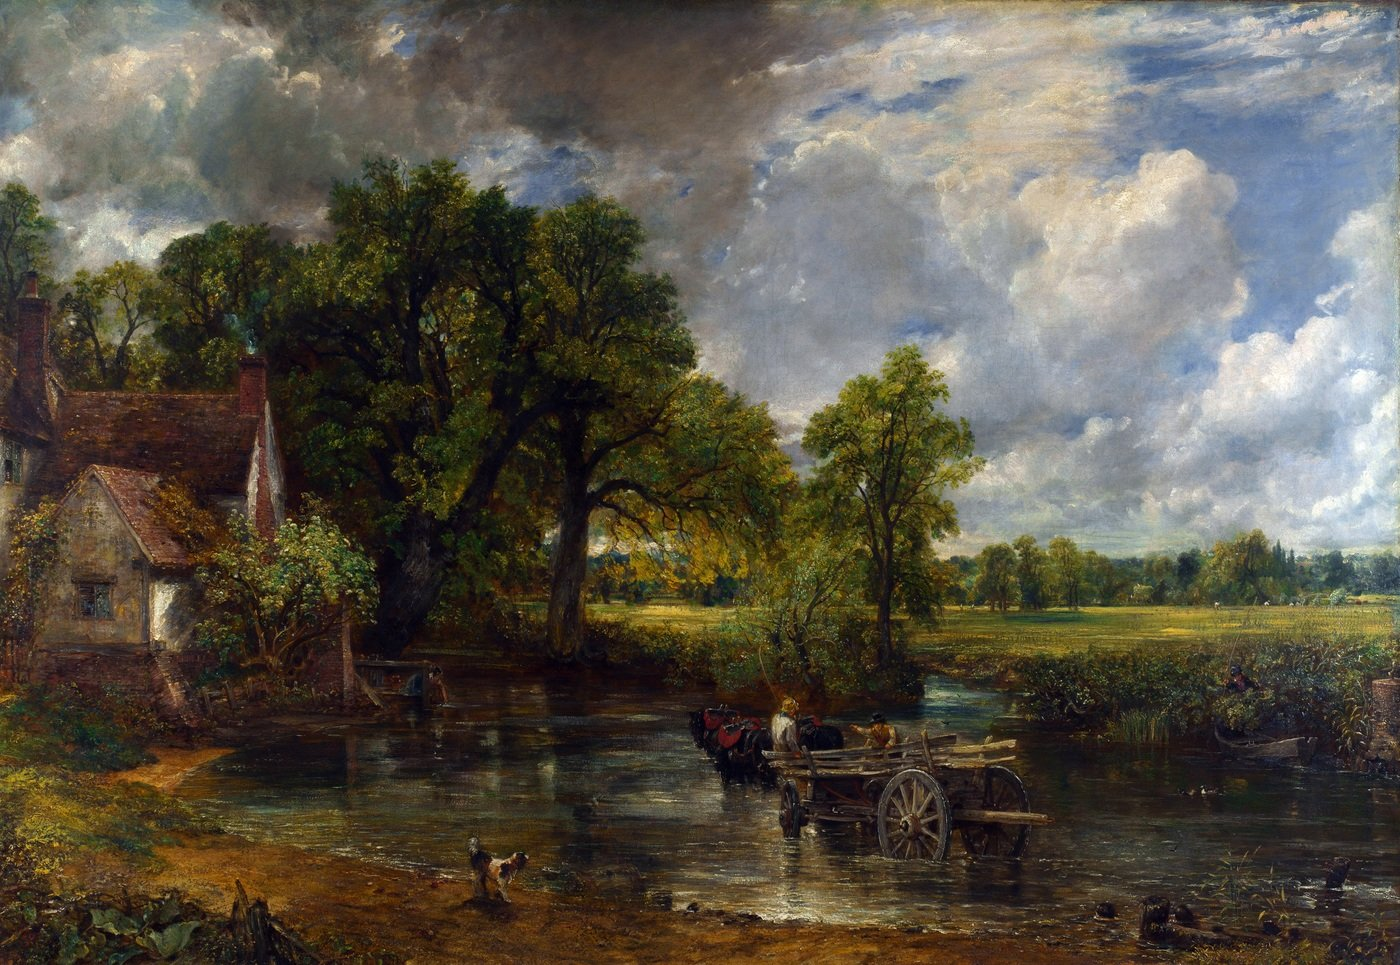 John Constable background